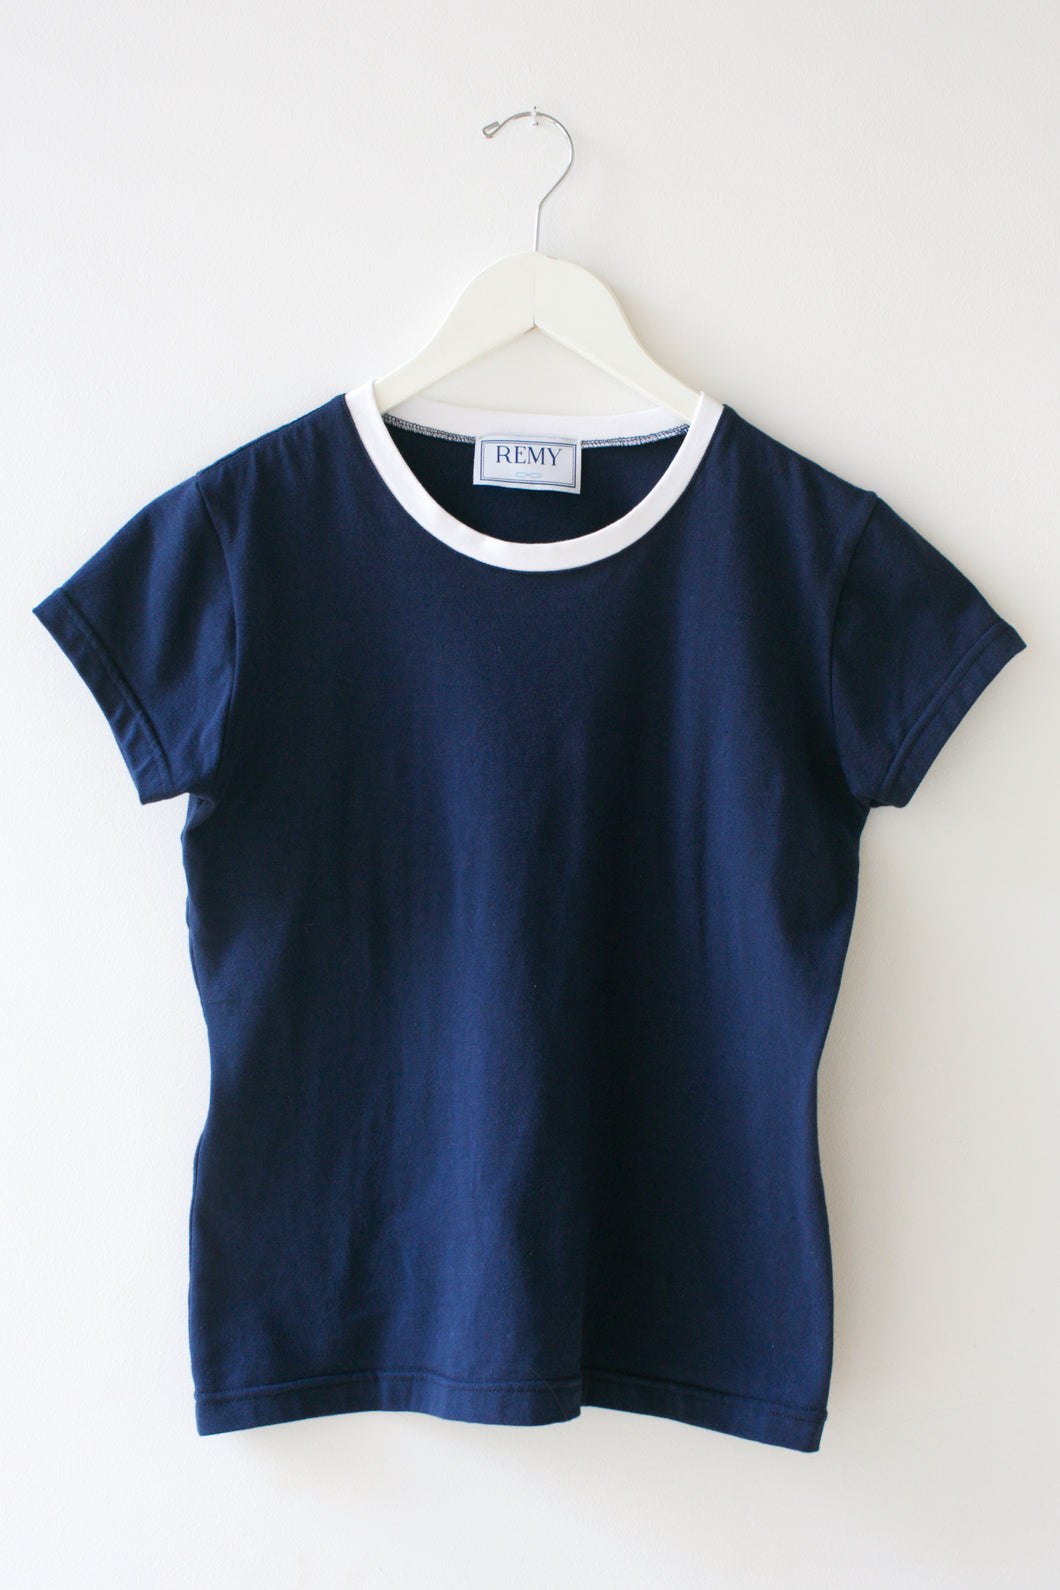 REMY Perfect T